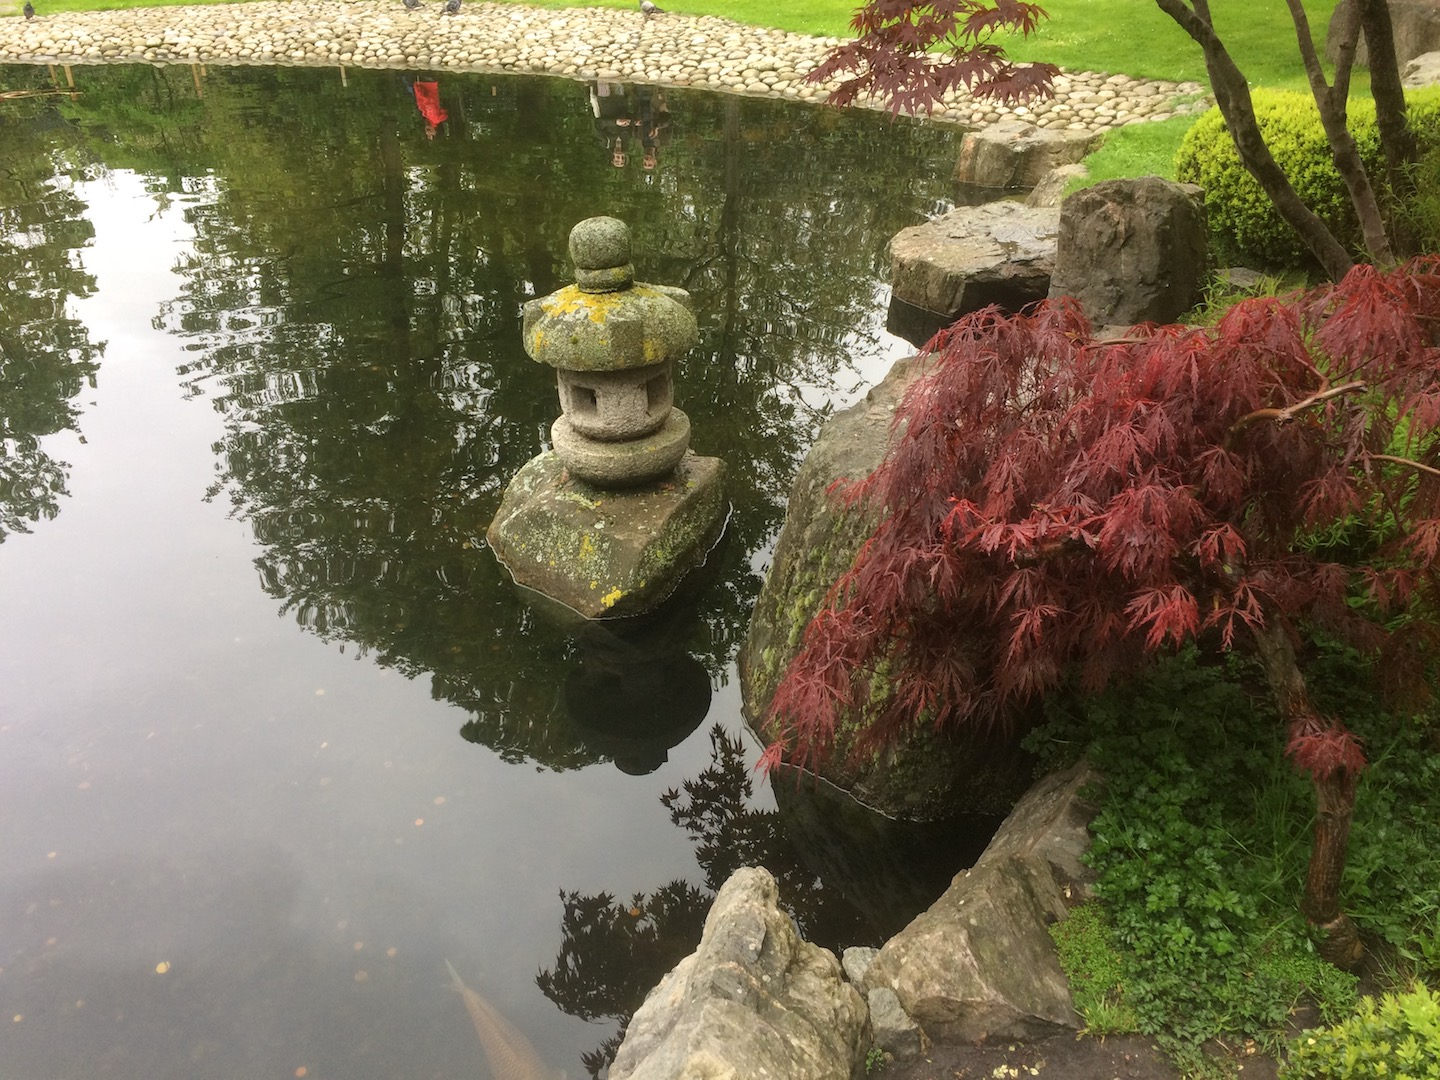 Koi fish swim around a stone lantern on a stone in a tranquil garden Pond. Water features are a often a big part of Japanese garden design.